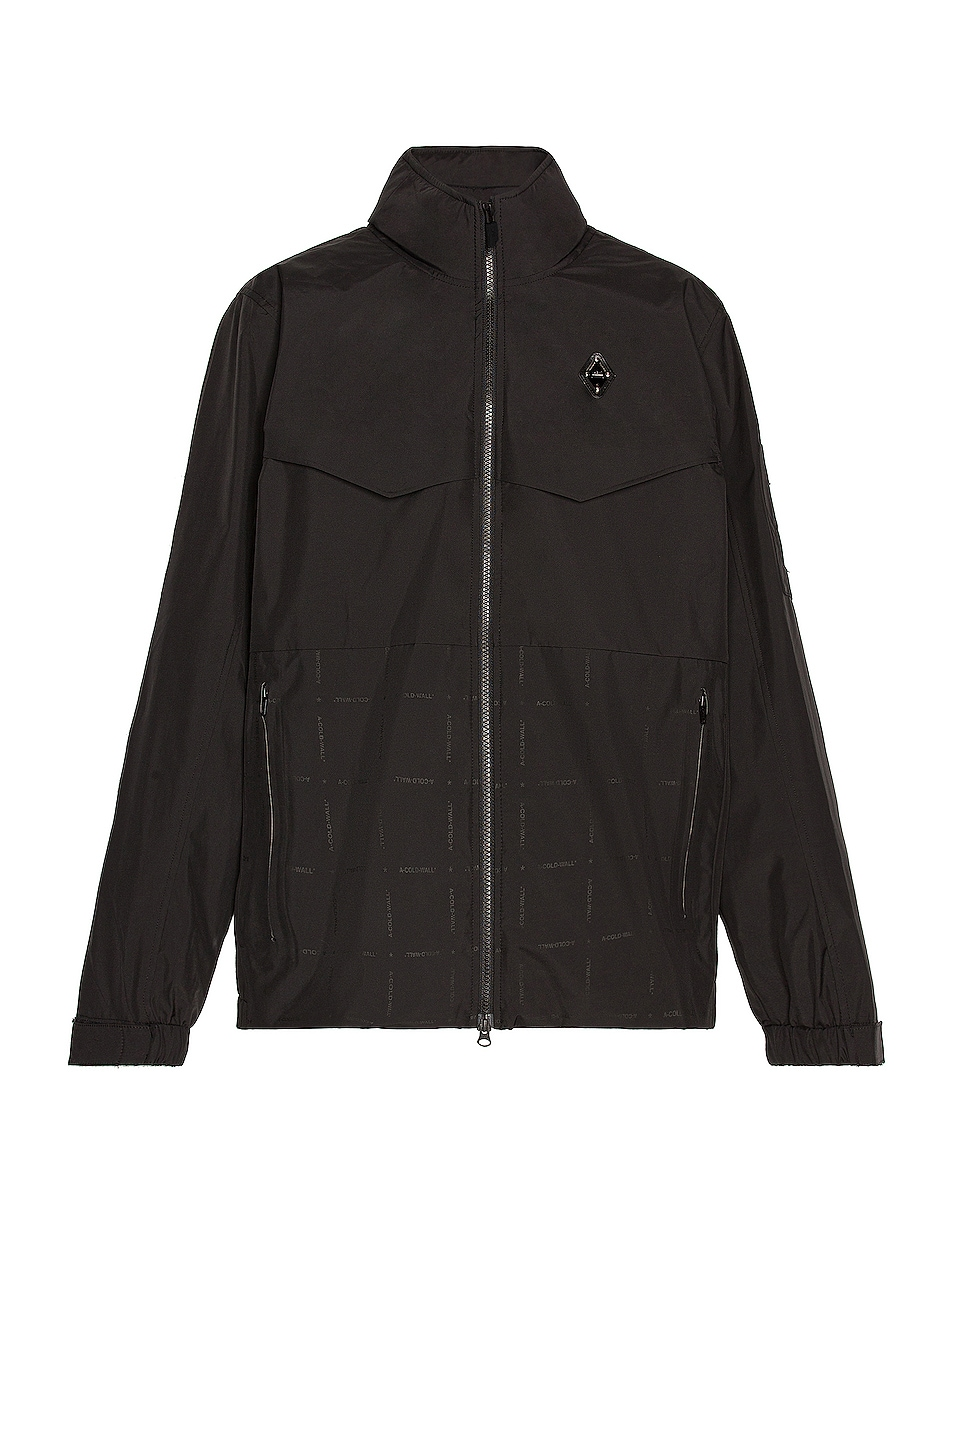 Image 1 of A-COLD-WALL* Rhombus Storm Jacket in Black